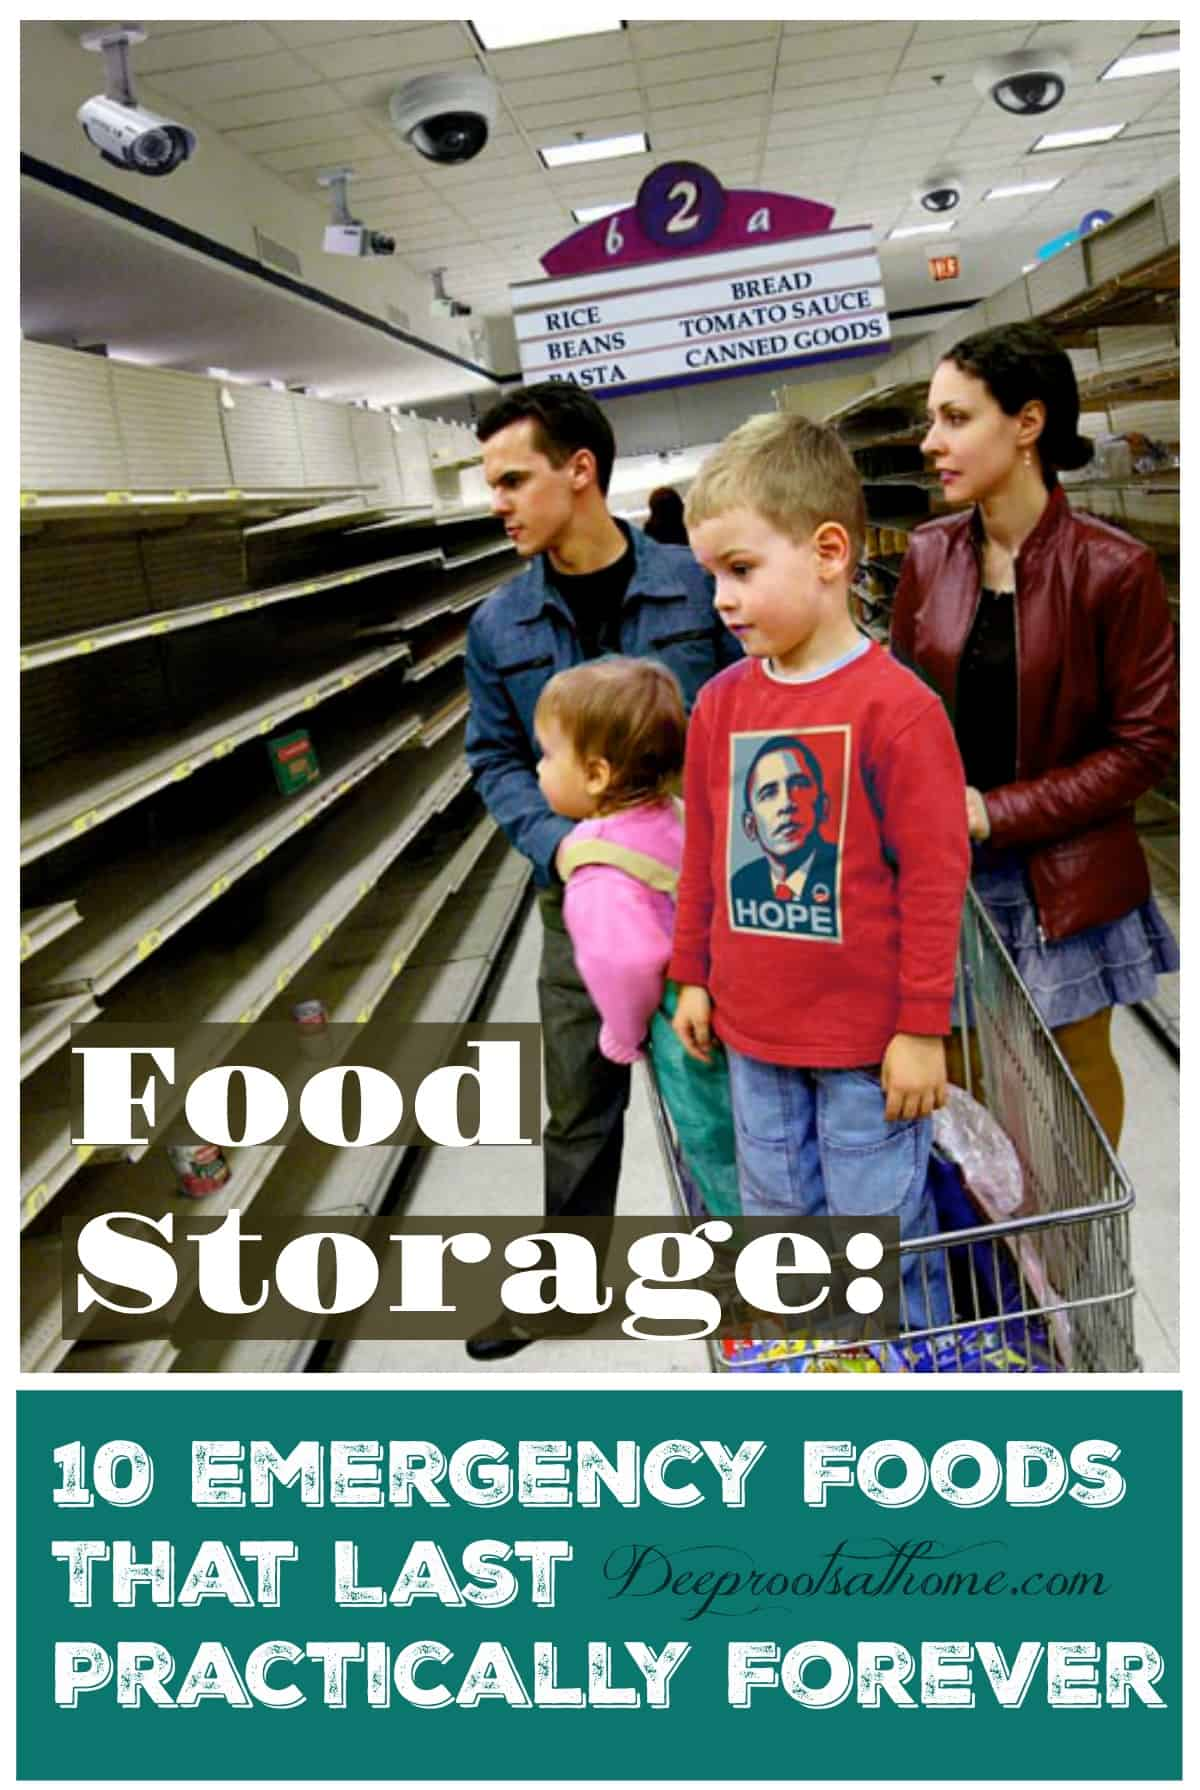 Food Storage: 10 Emergency Foods That Last Practically Forever. A family standing in a grocery store with no food on the shelves in the aisle.